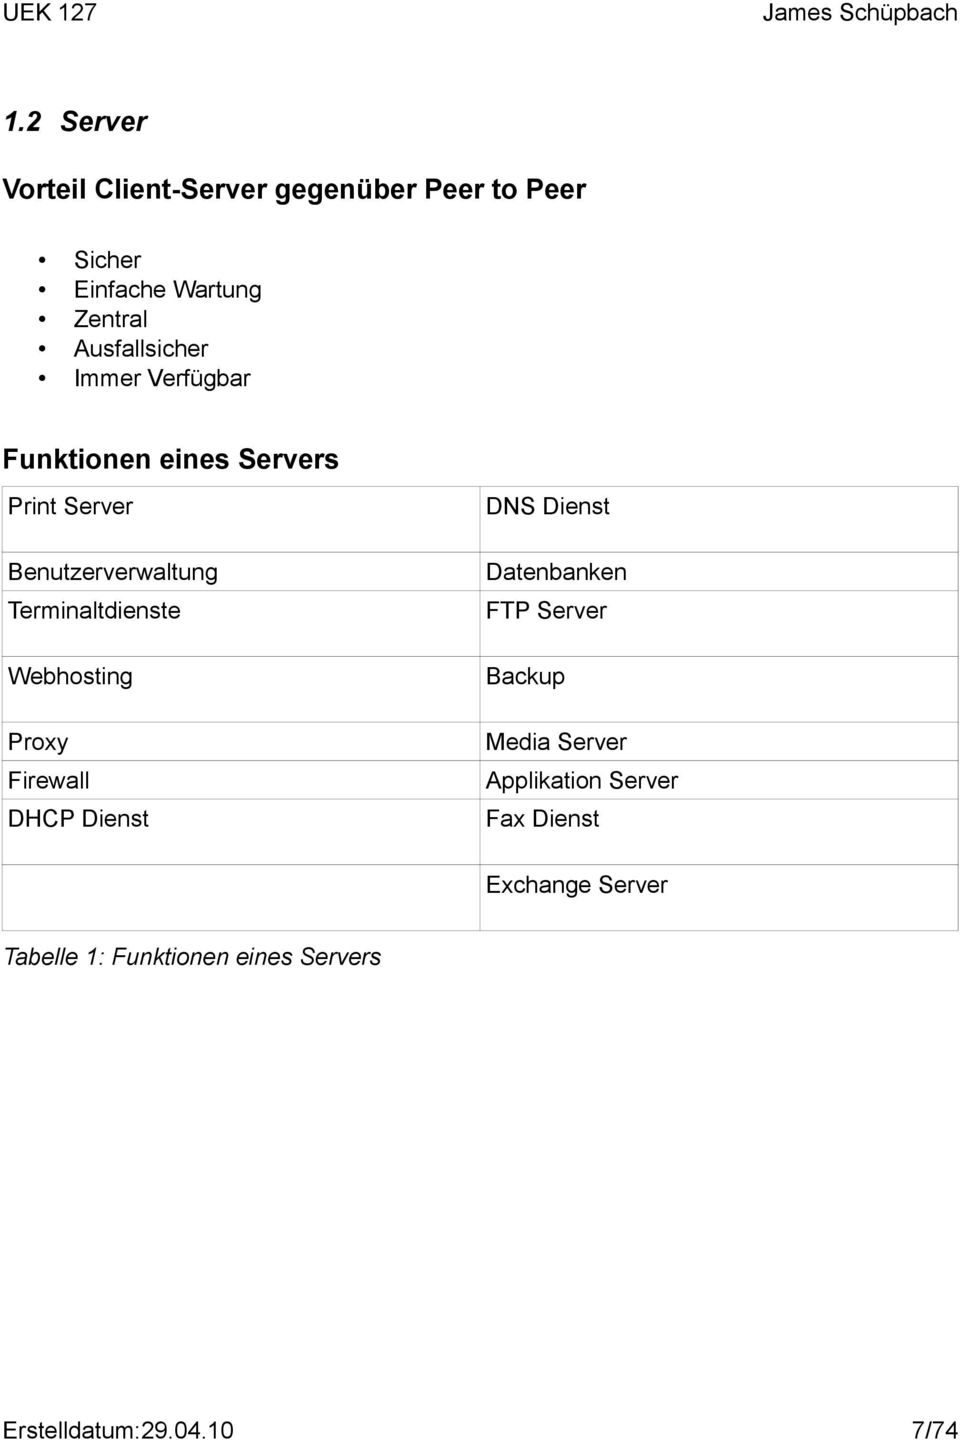 Benutzerverwaltung Datenbanken Terminaltdienste FTP Server Webhosting Backup Proxy Media